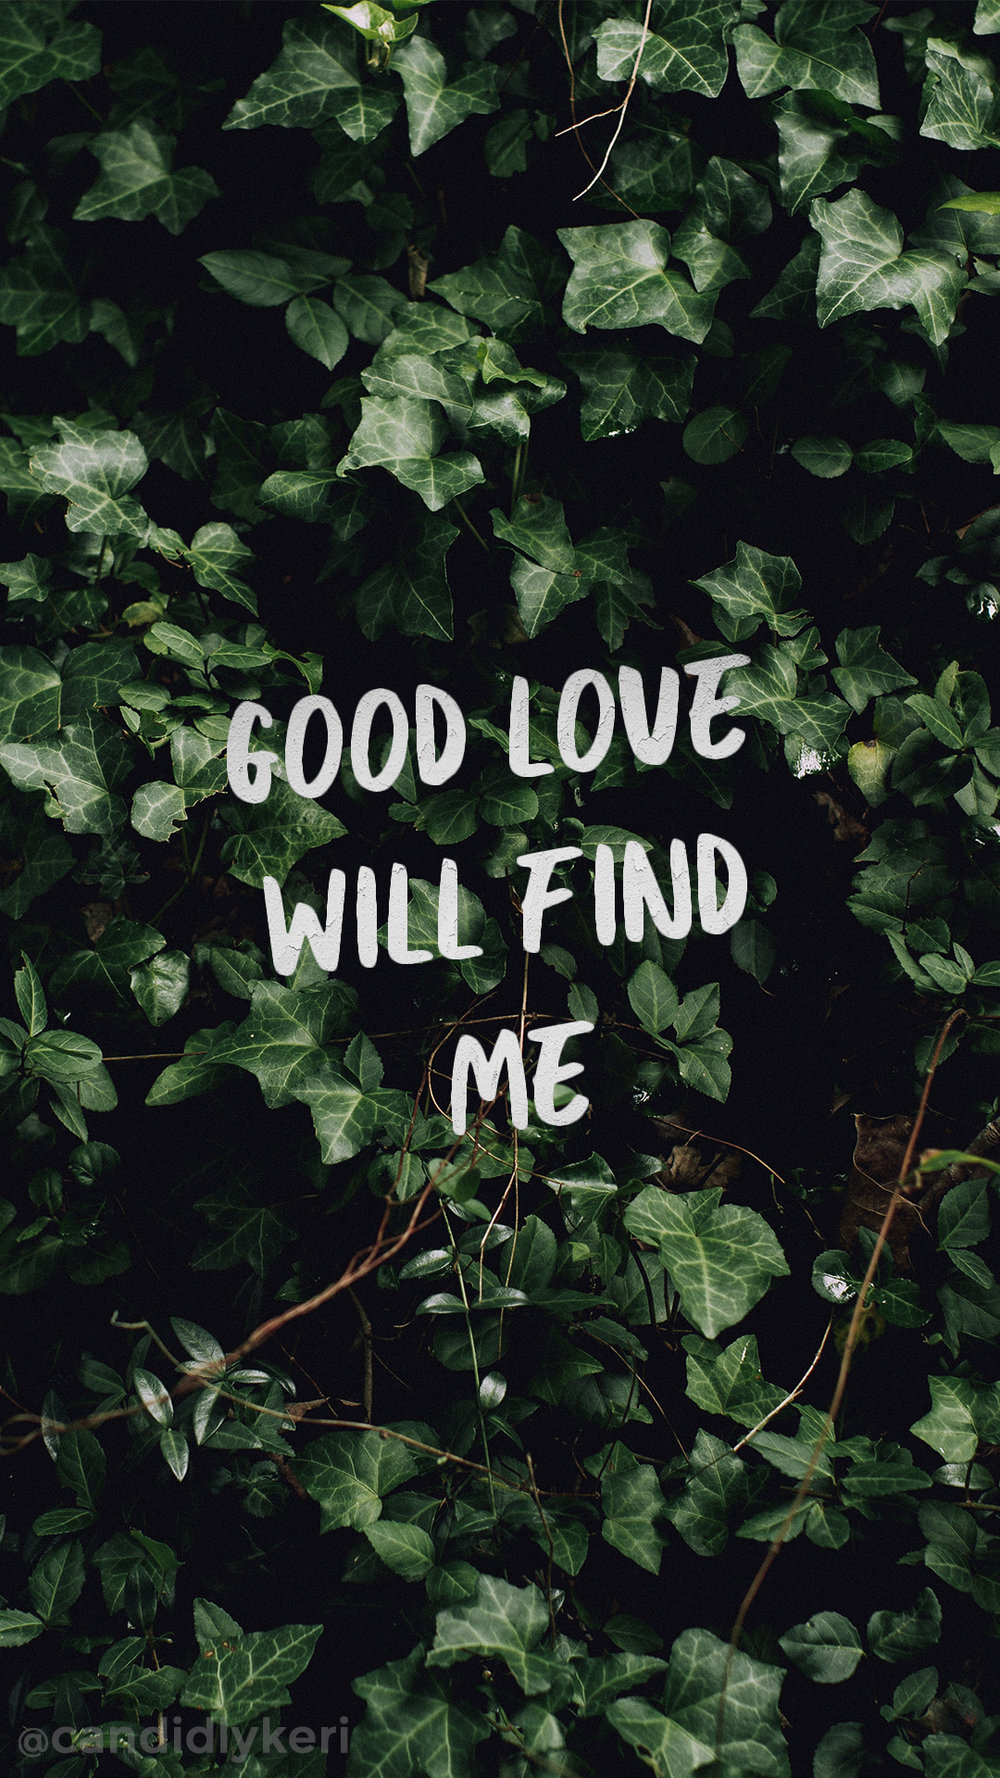 Good Love will find me